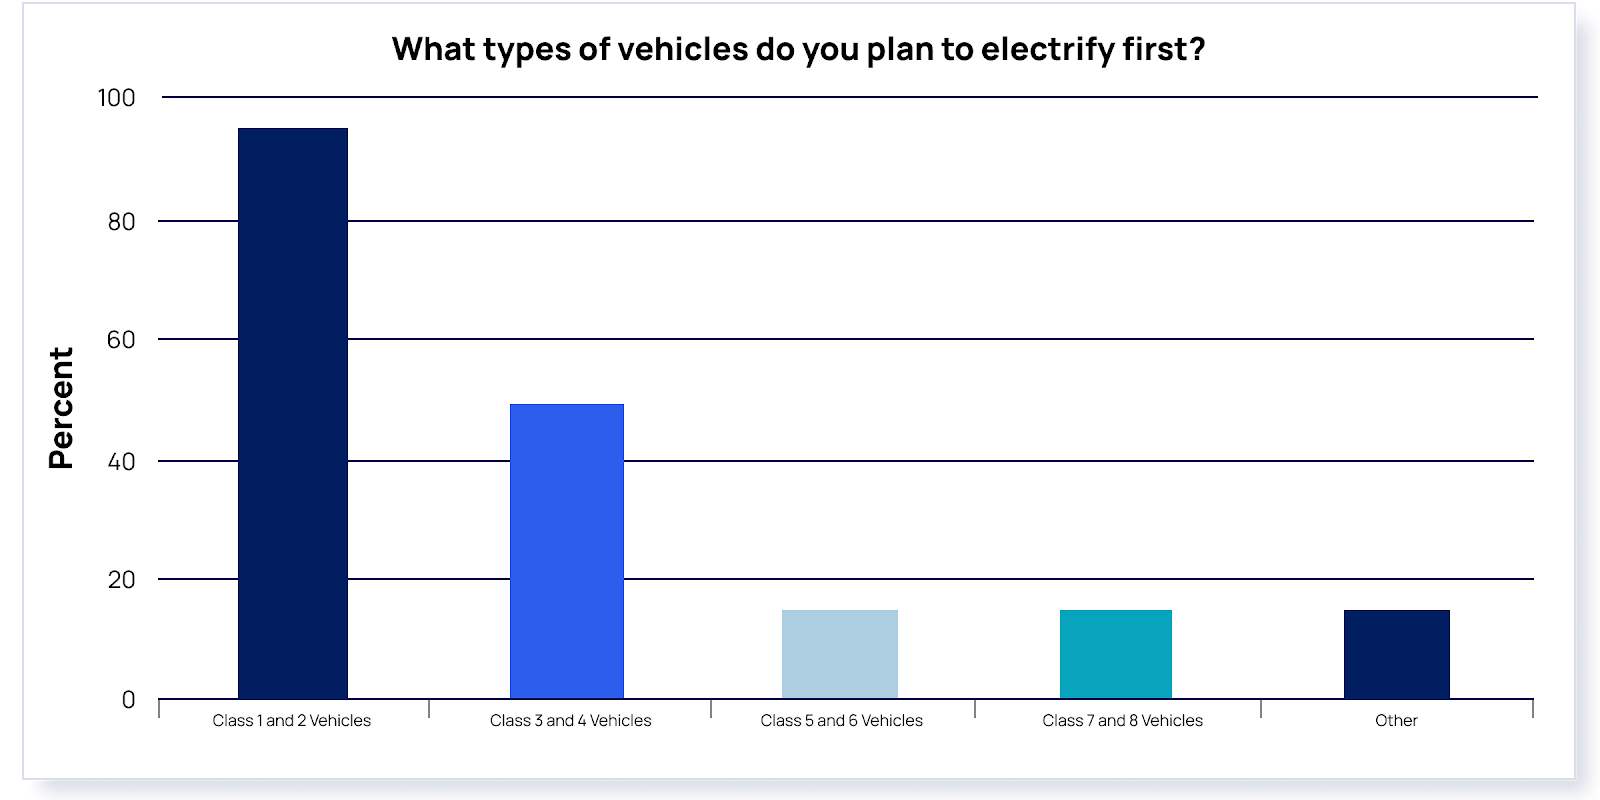 Vehicle classes going electric